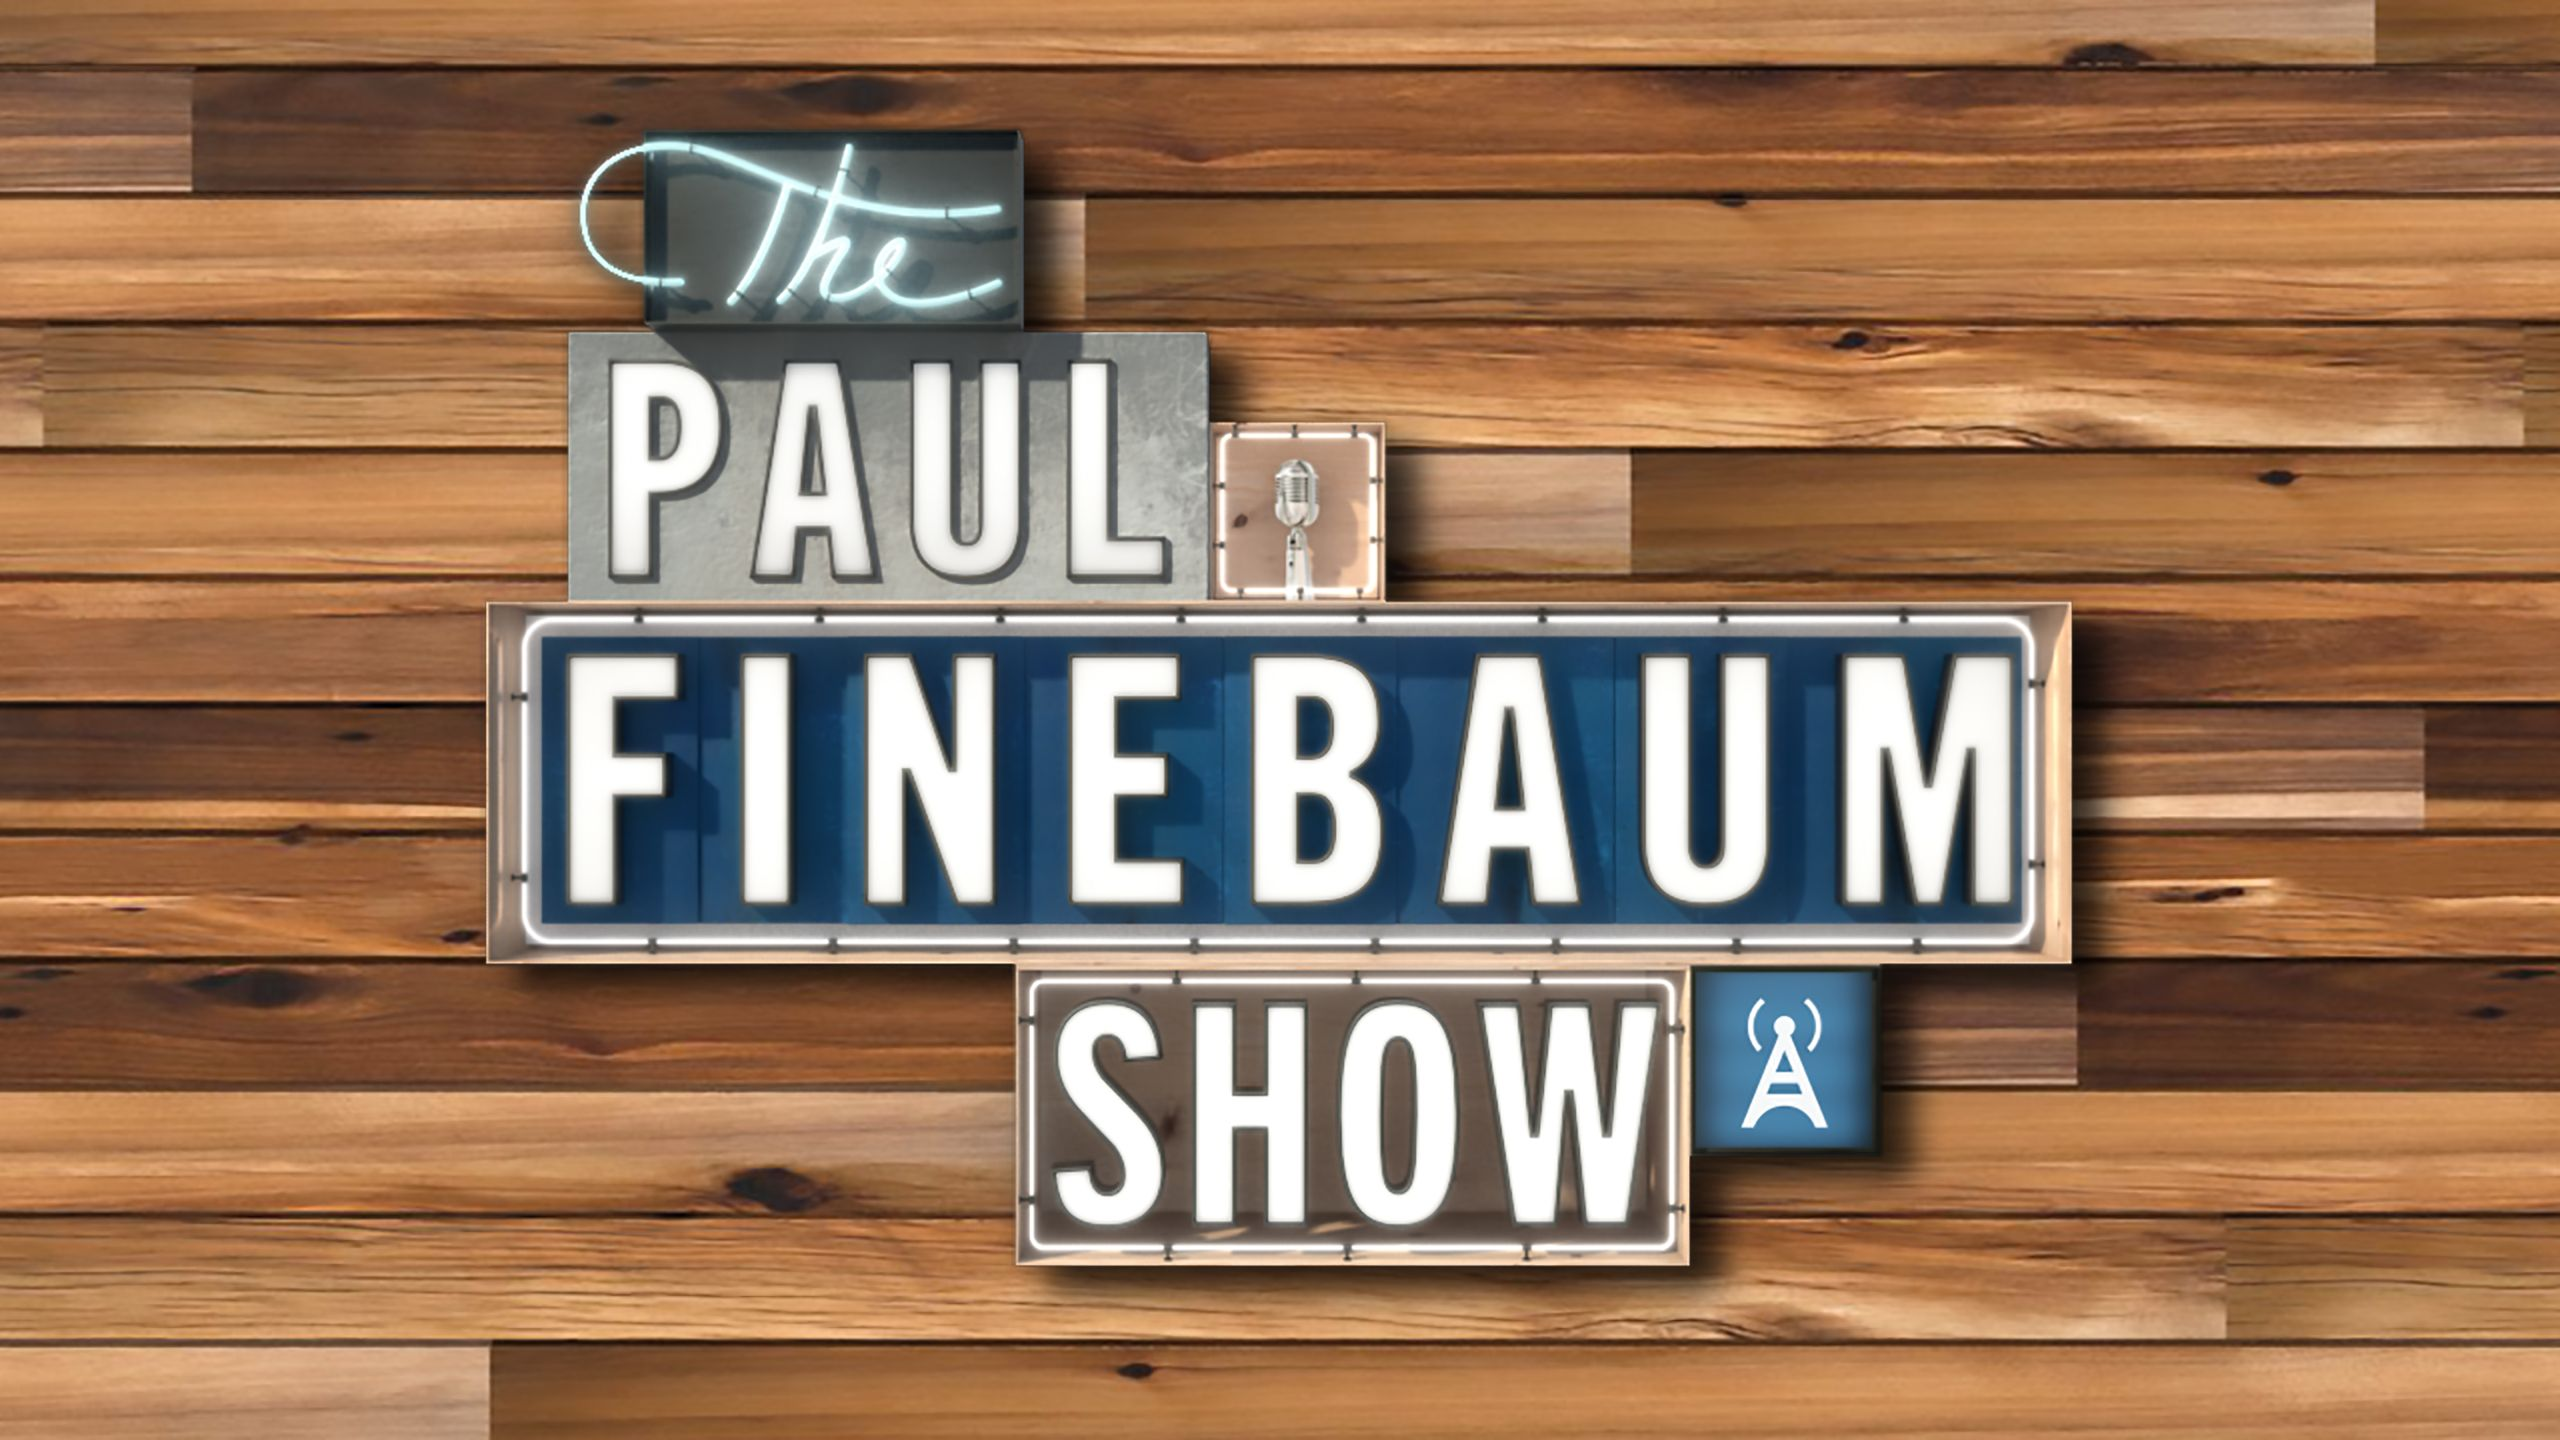 Tue, 1/23 - The Paul Finebaum Show